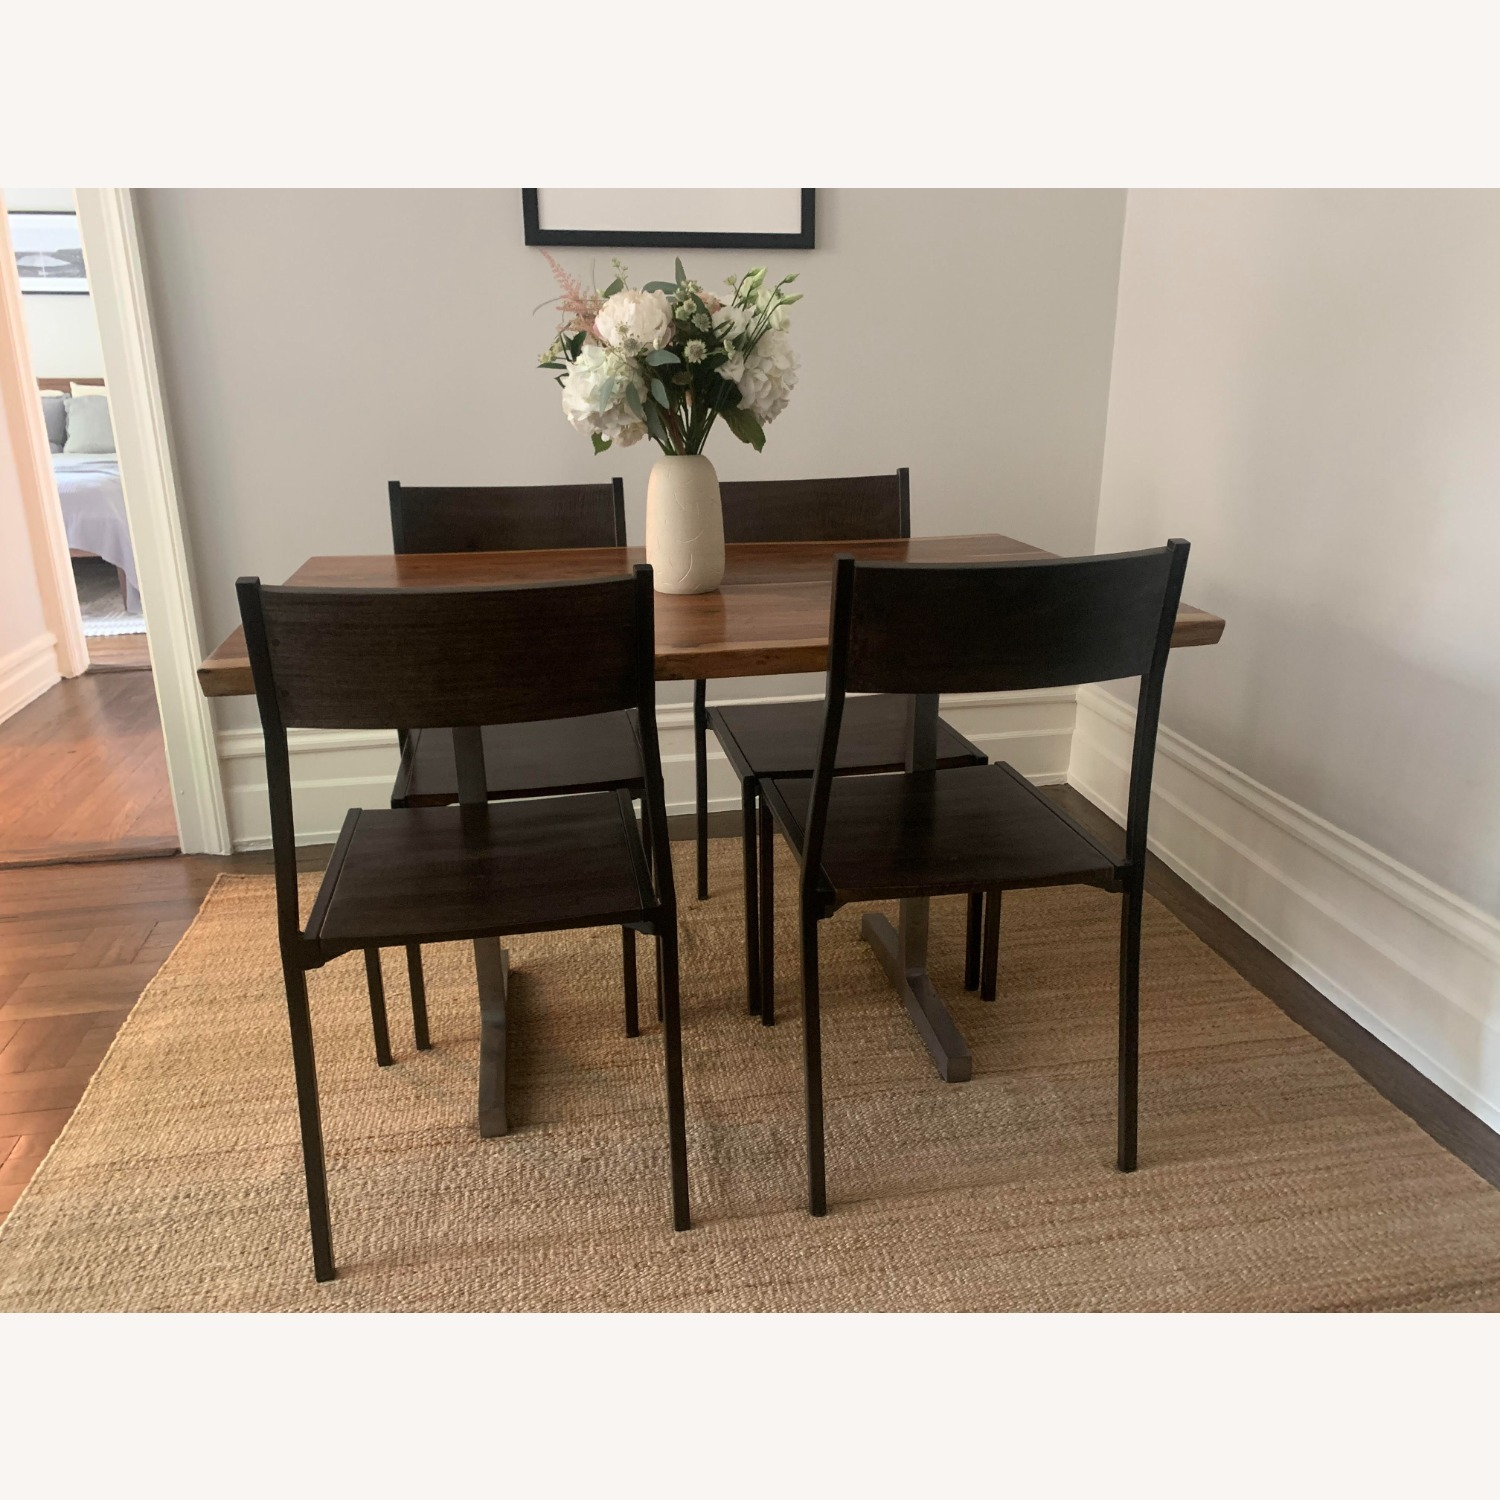 From the Source Oxidized Mango Dining Chairs - image-1